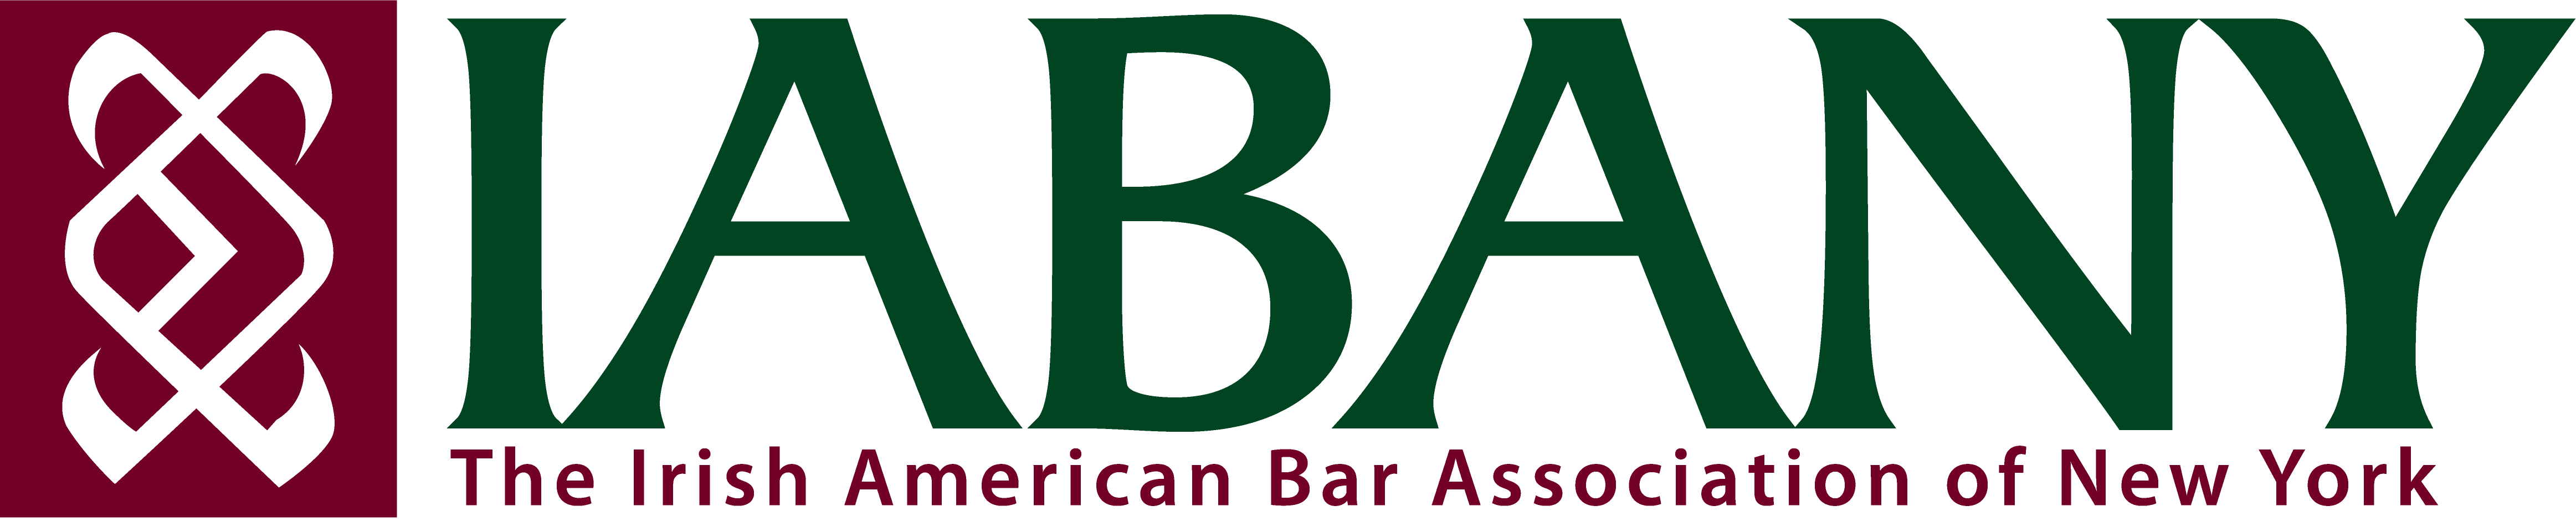 Home - Irish American Bar Association of New York